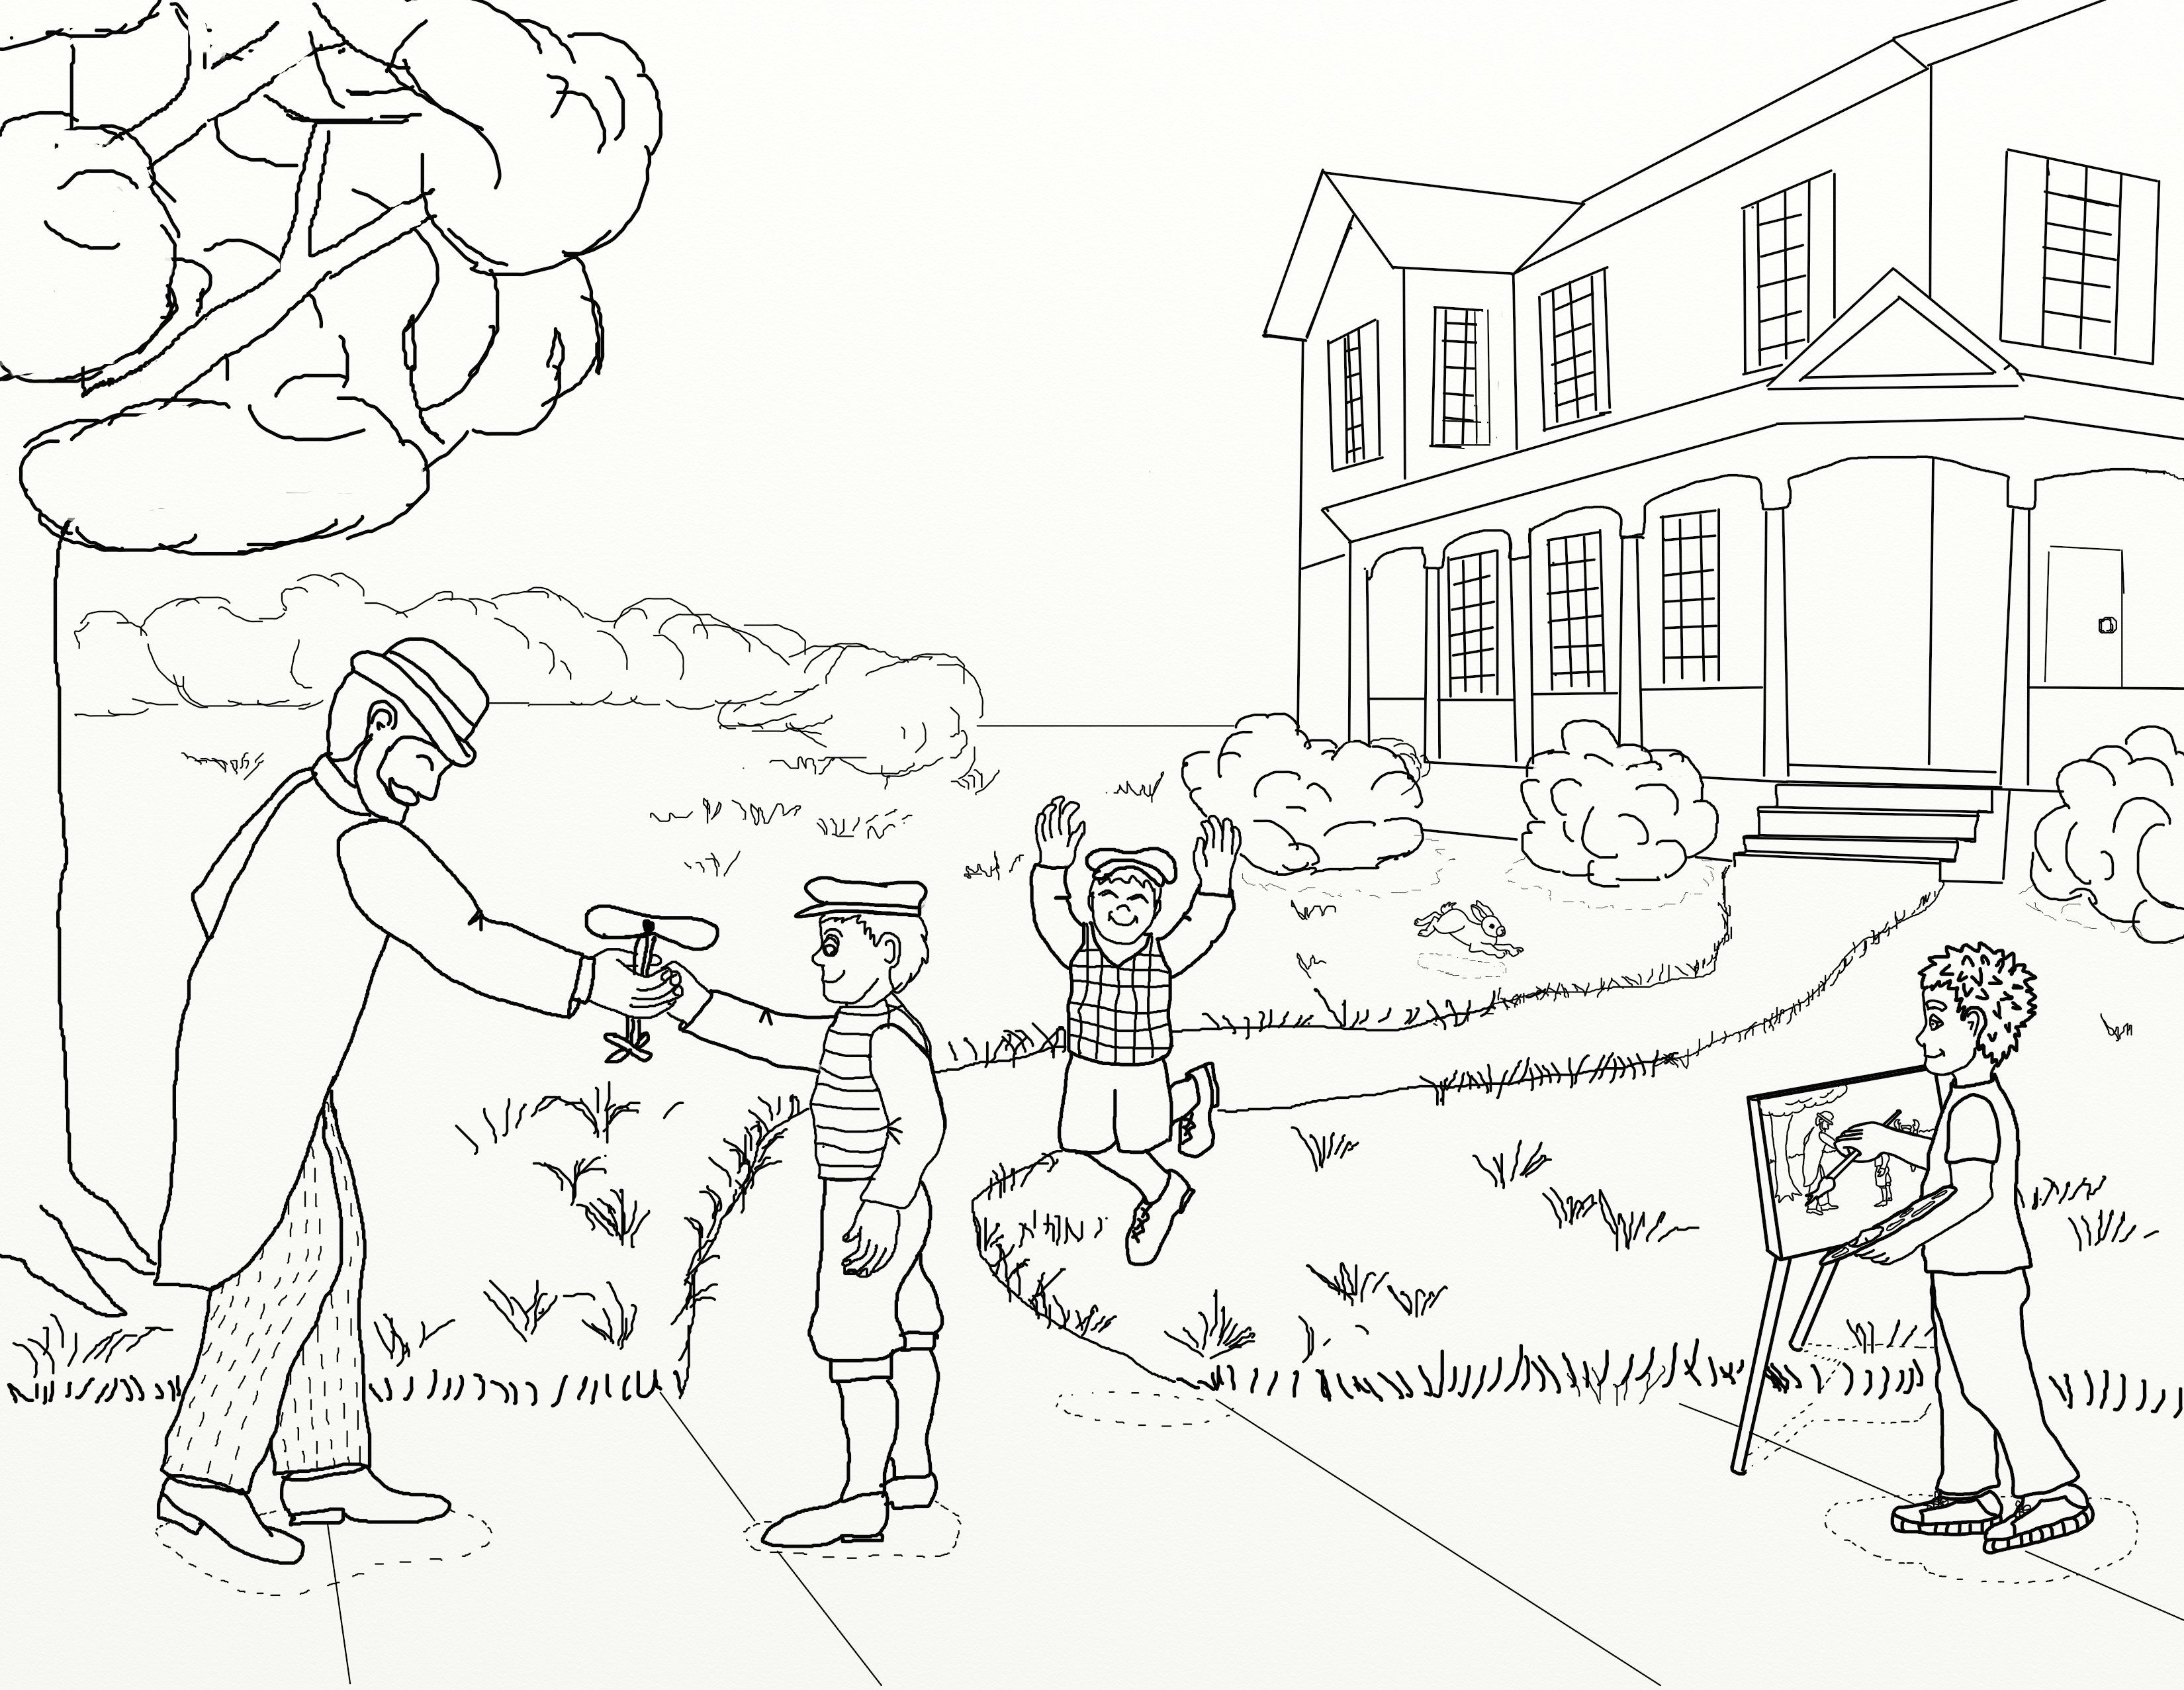 New Coloring Page Of Wright Brothers Getting A Rubber Band